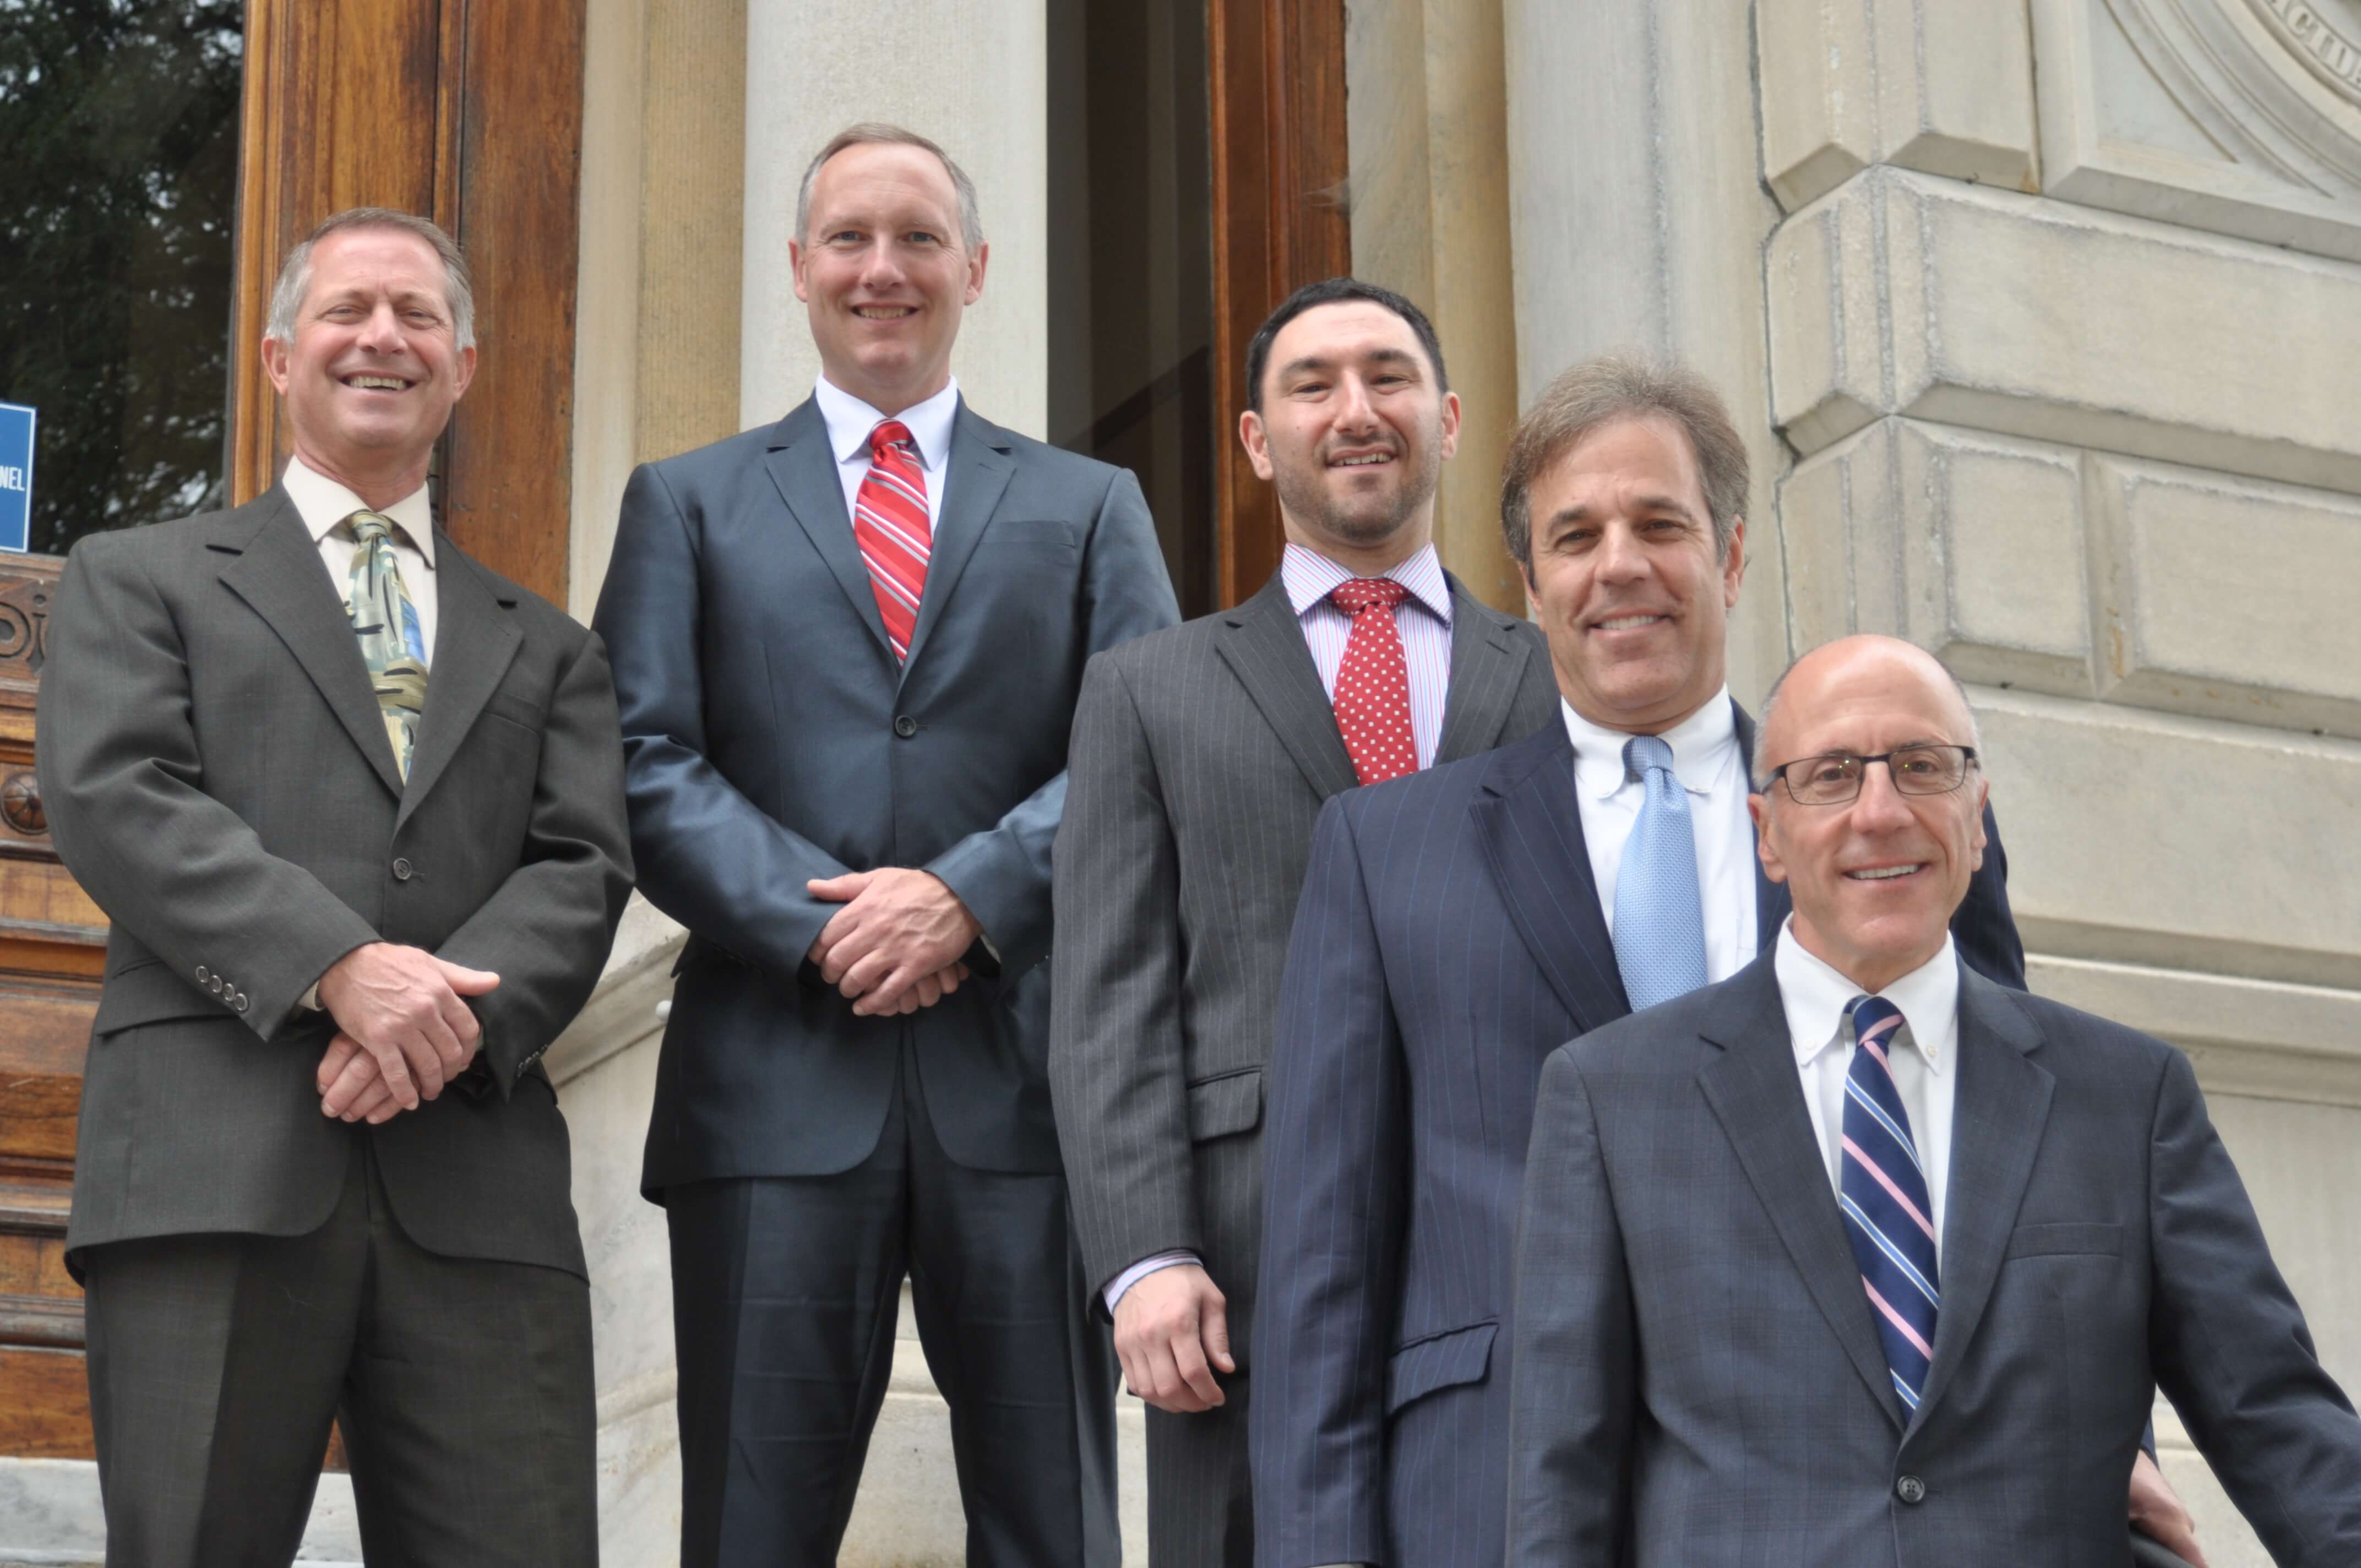 Attorney Robert Monteleone, Jr., Scott Ellis, Matt Mozian, Peri Campoli, Thomas Campoli outside the courthouse in Pittsfield, MA